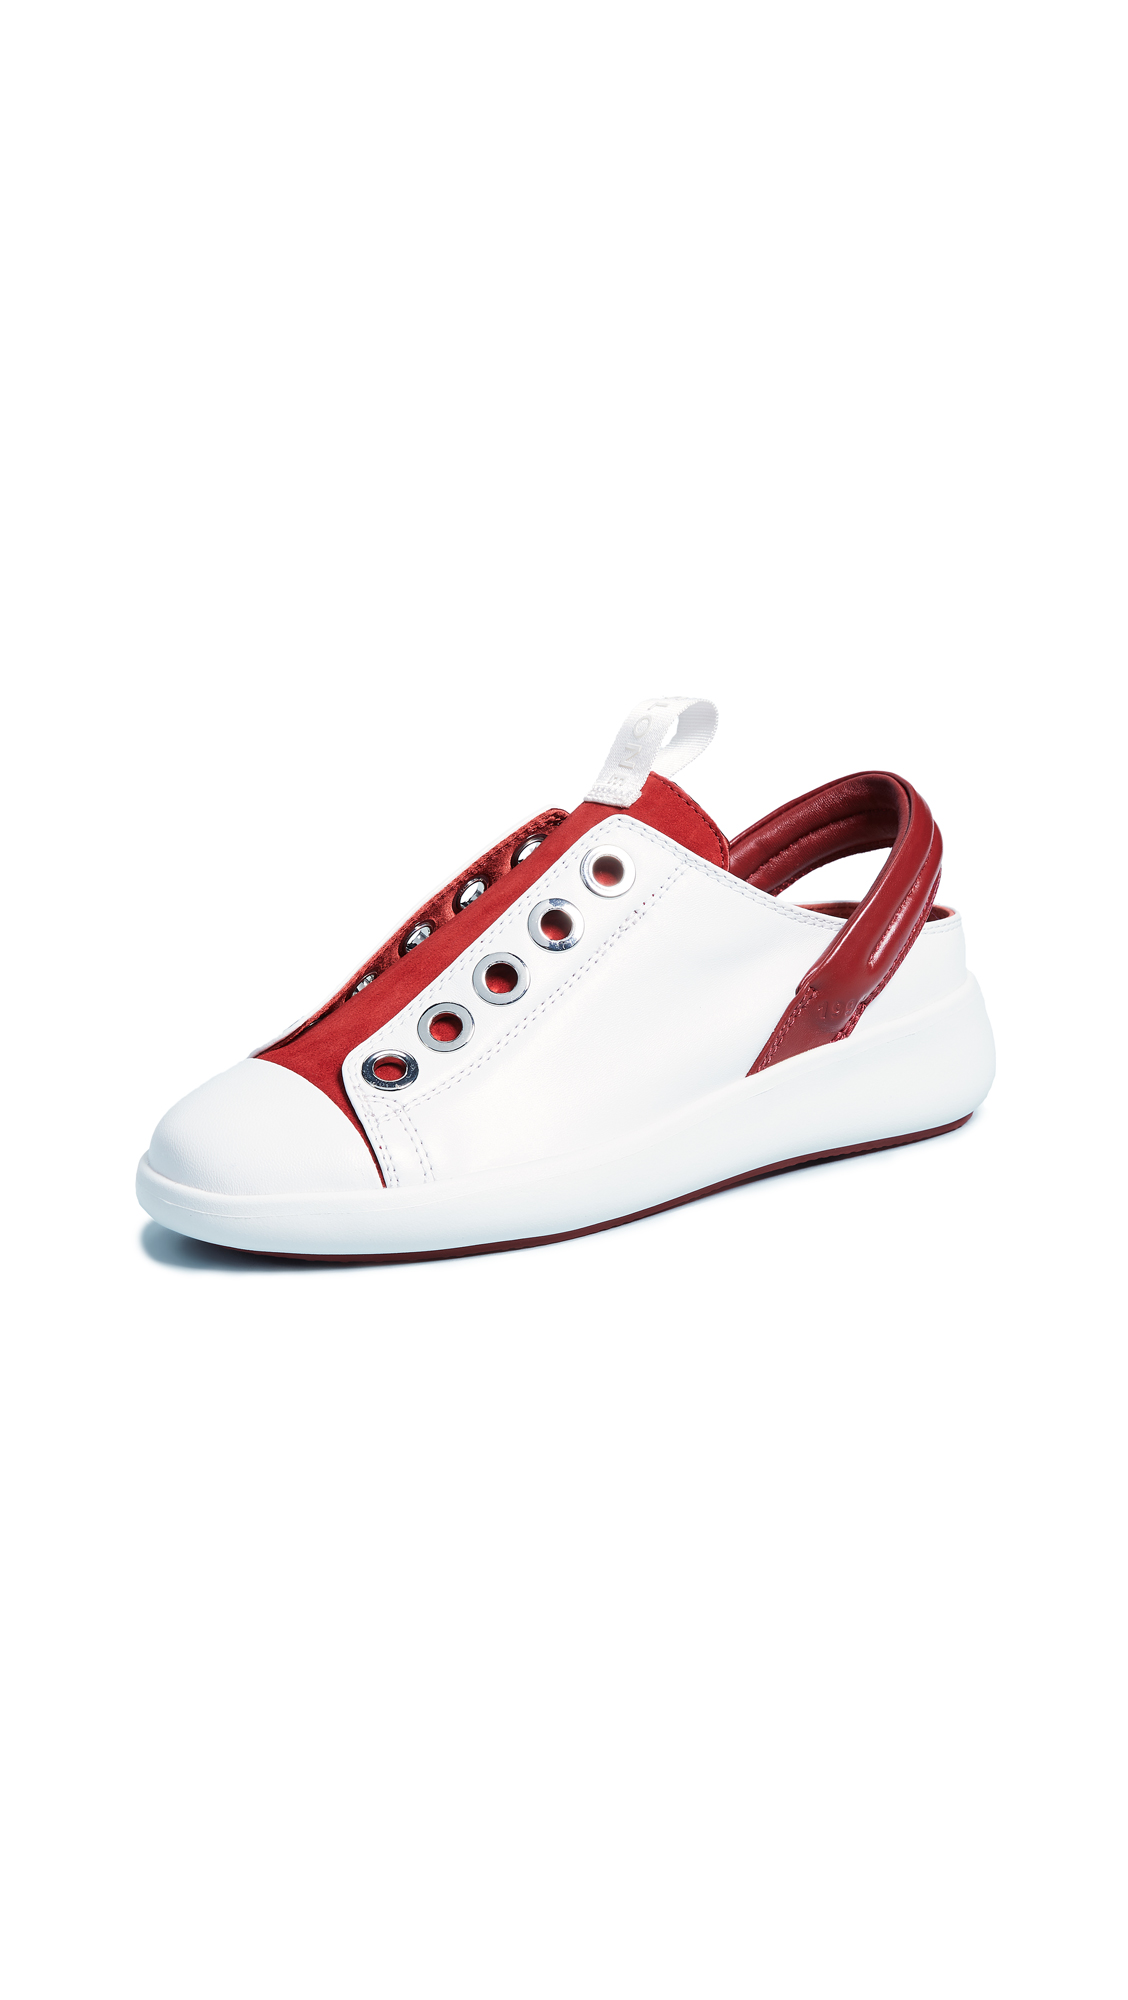 CLONE Moonstone Sneakers - White/Red